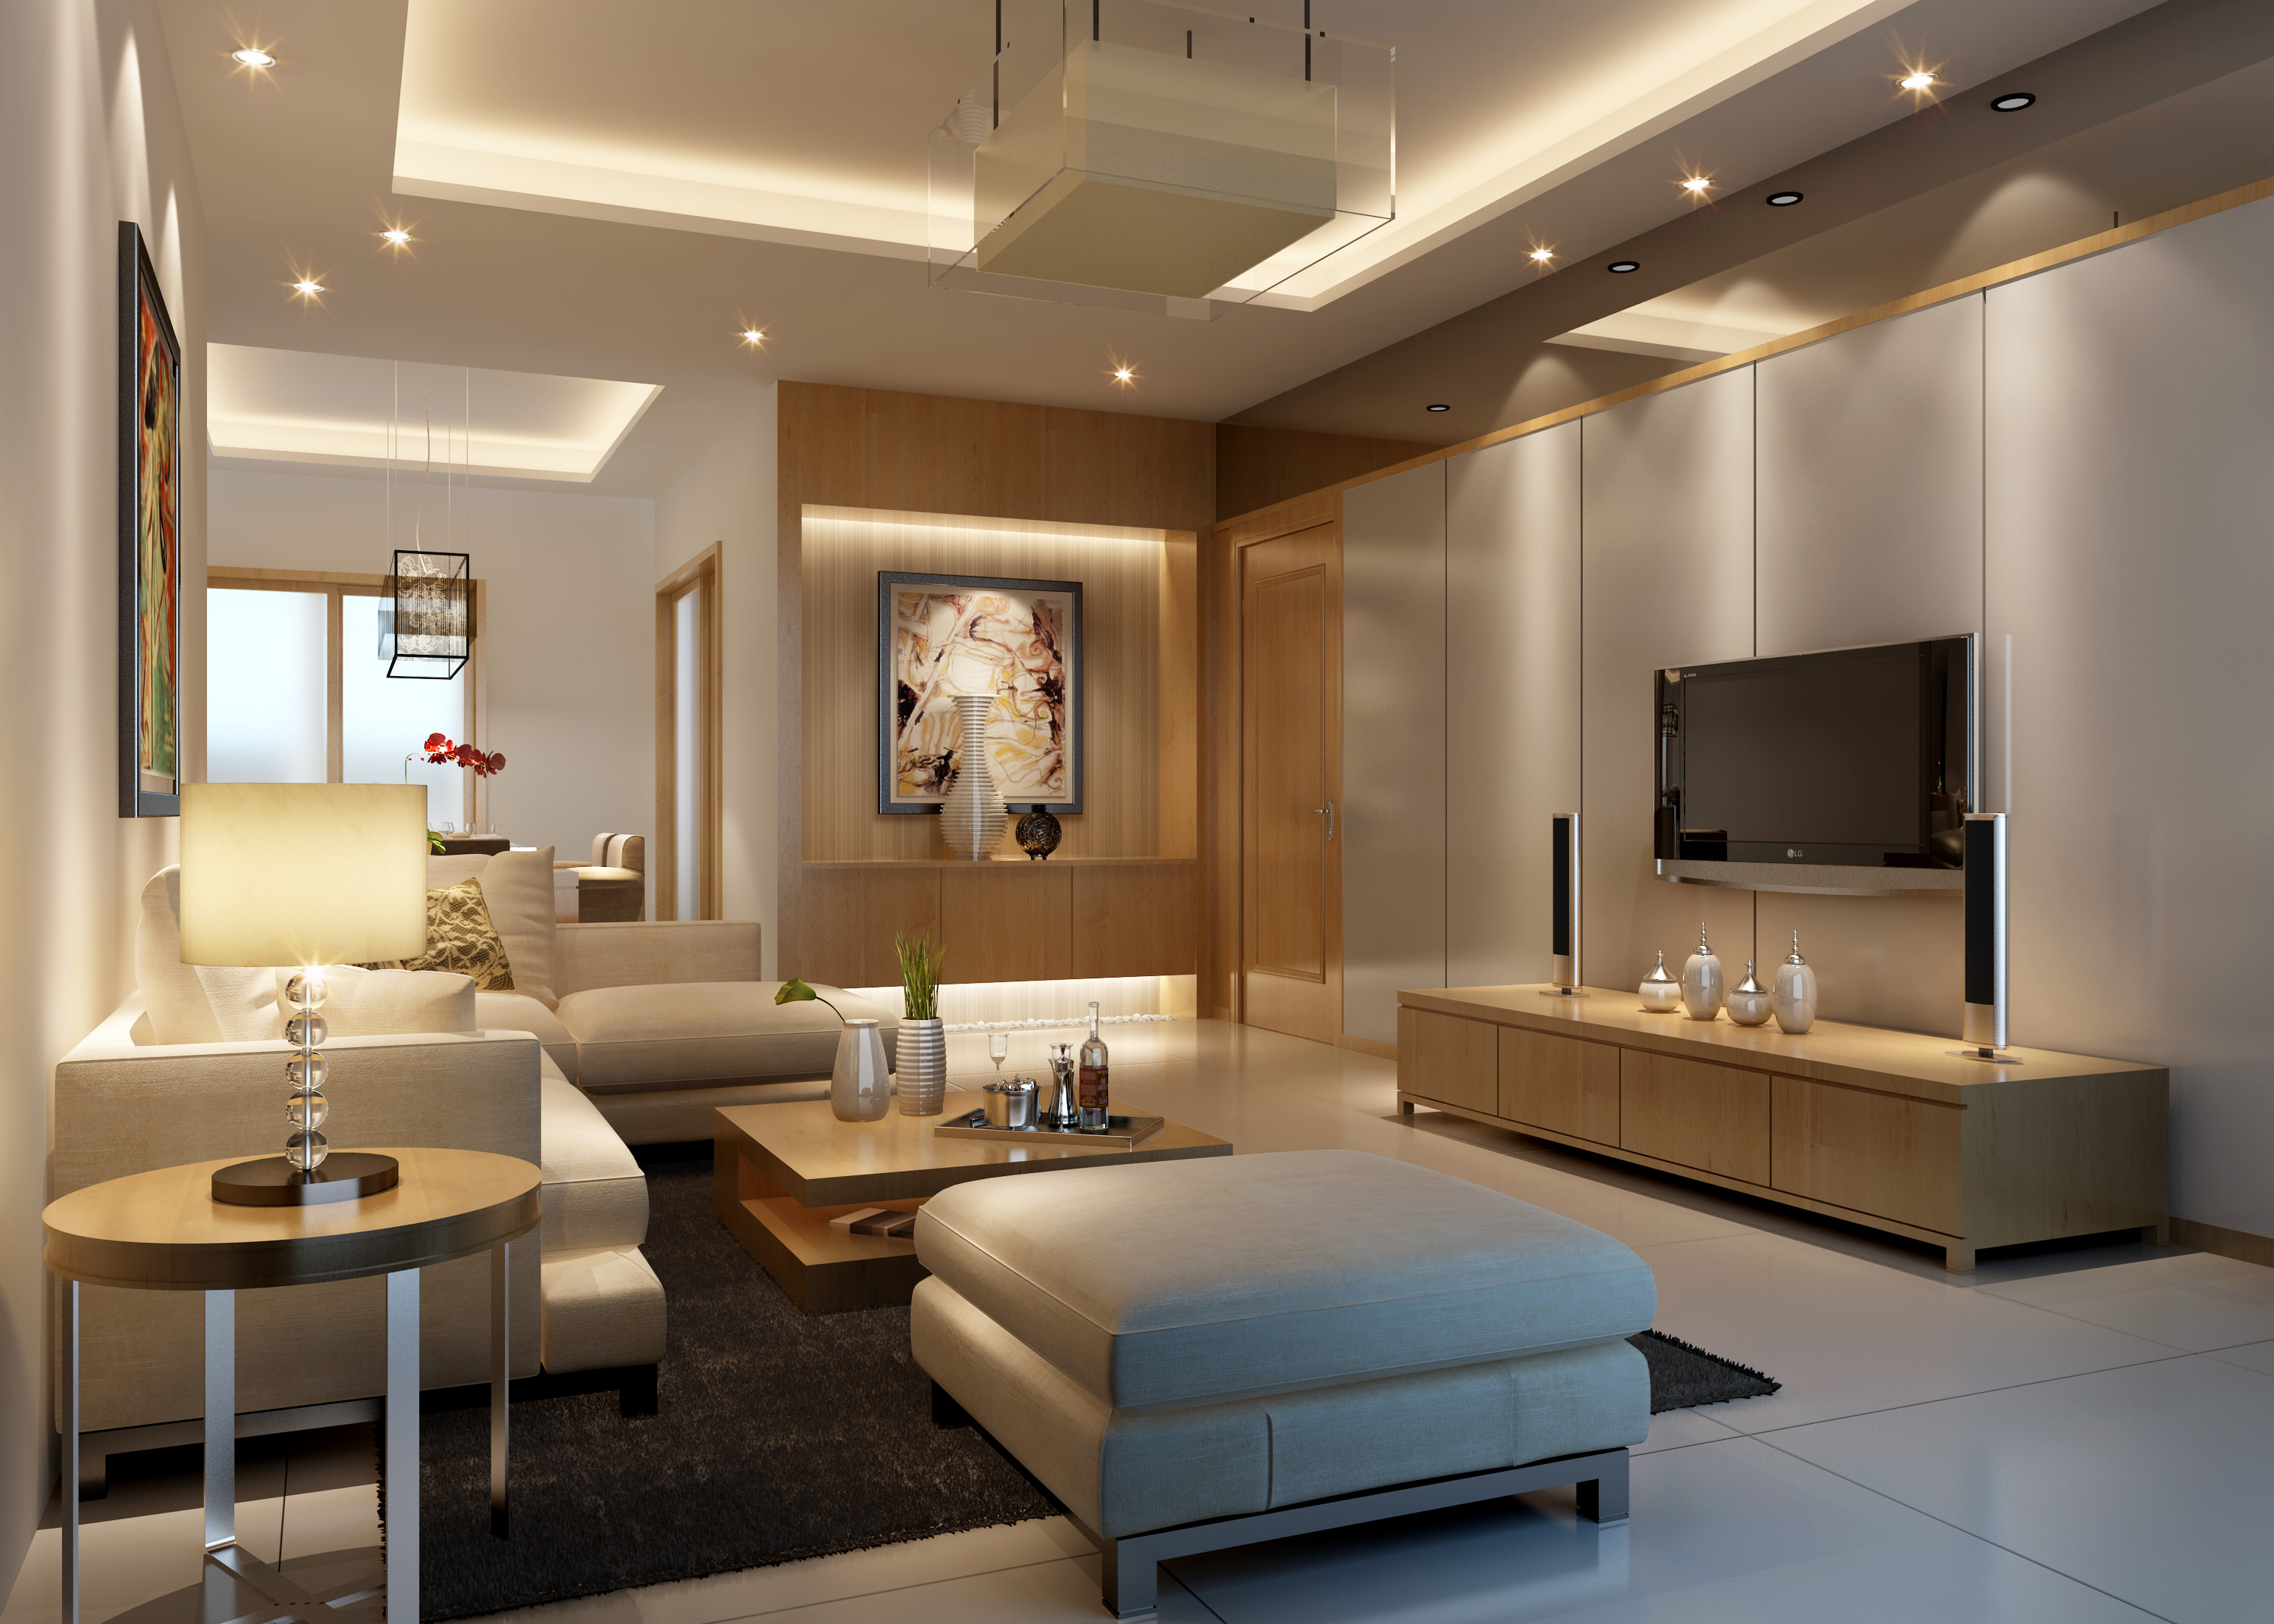 Superb Living Room 3d Model Max 1